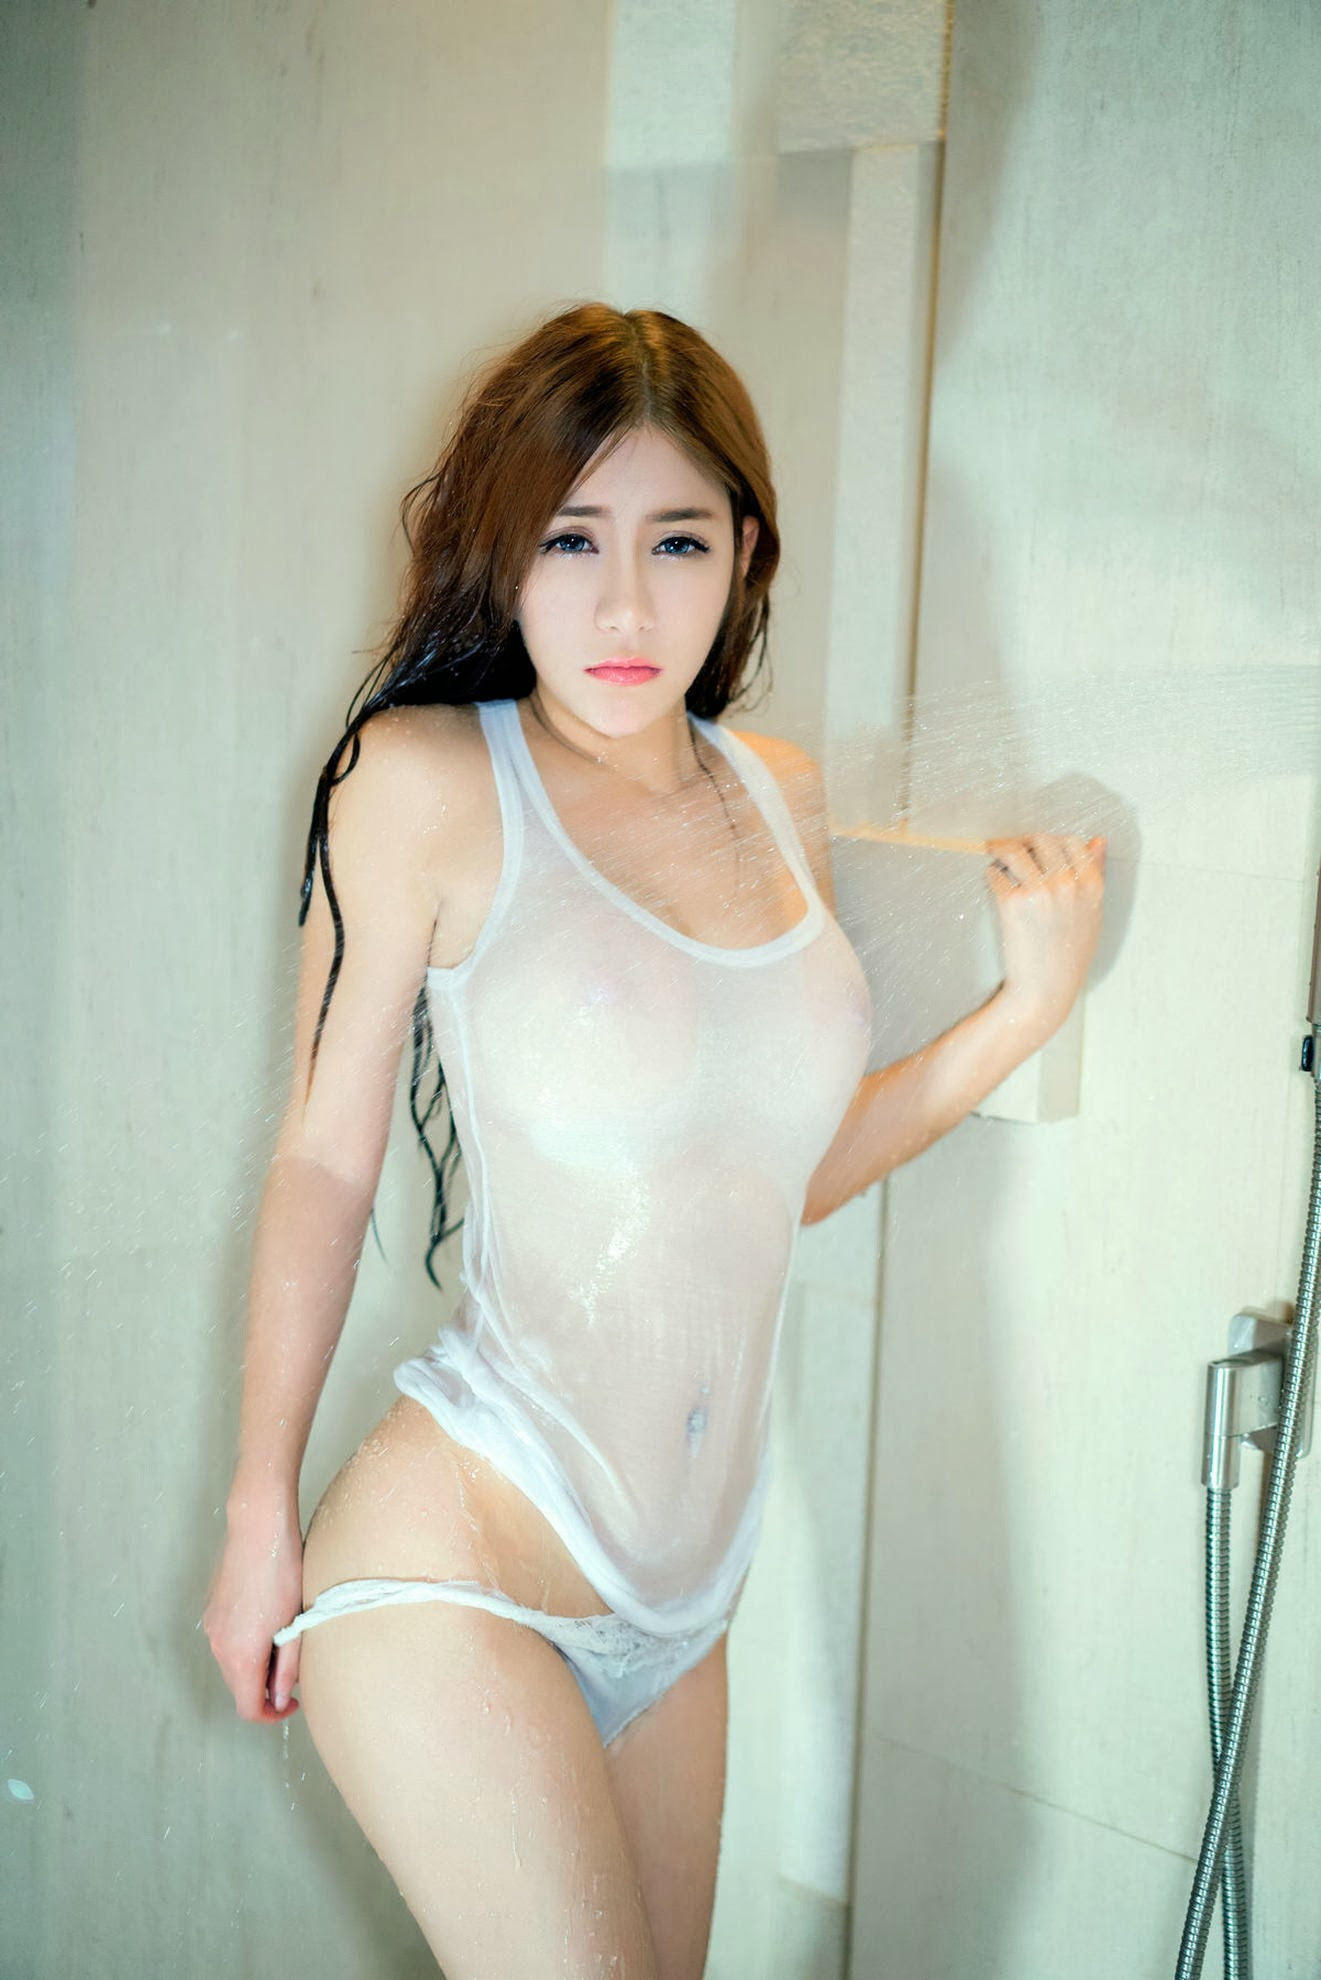 Li Qixi 李七喜 See Through and Nude [生活实录][推女郎 TuiGirl] No ...